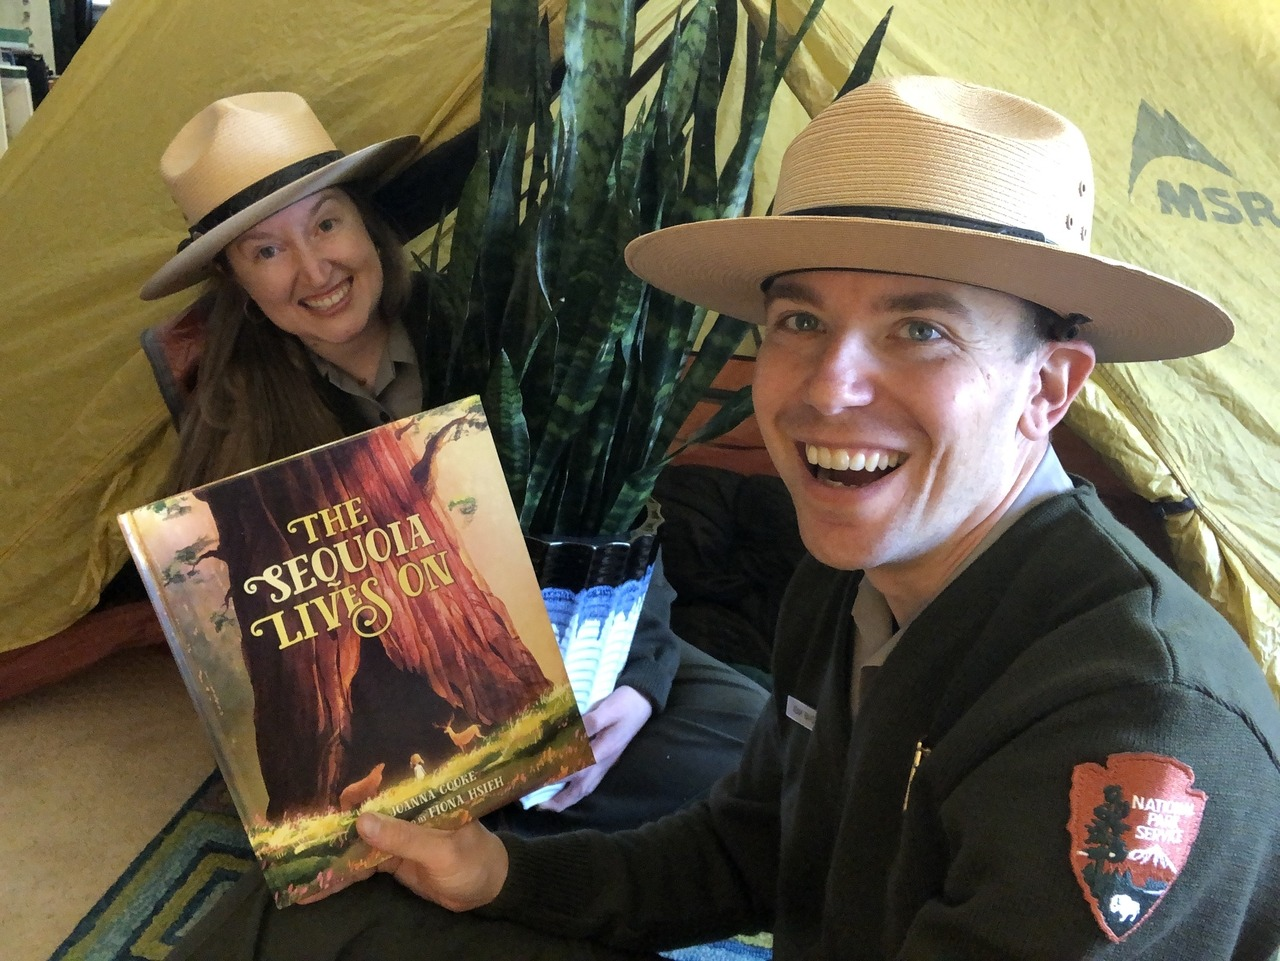 """Two Yosemite rangers in uniform host a live reading from their house. One ranger holds the children's book """"The Sequoia Lives On,"""" while the other peers out from a tent."""